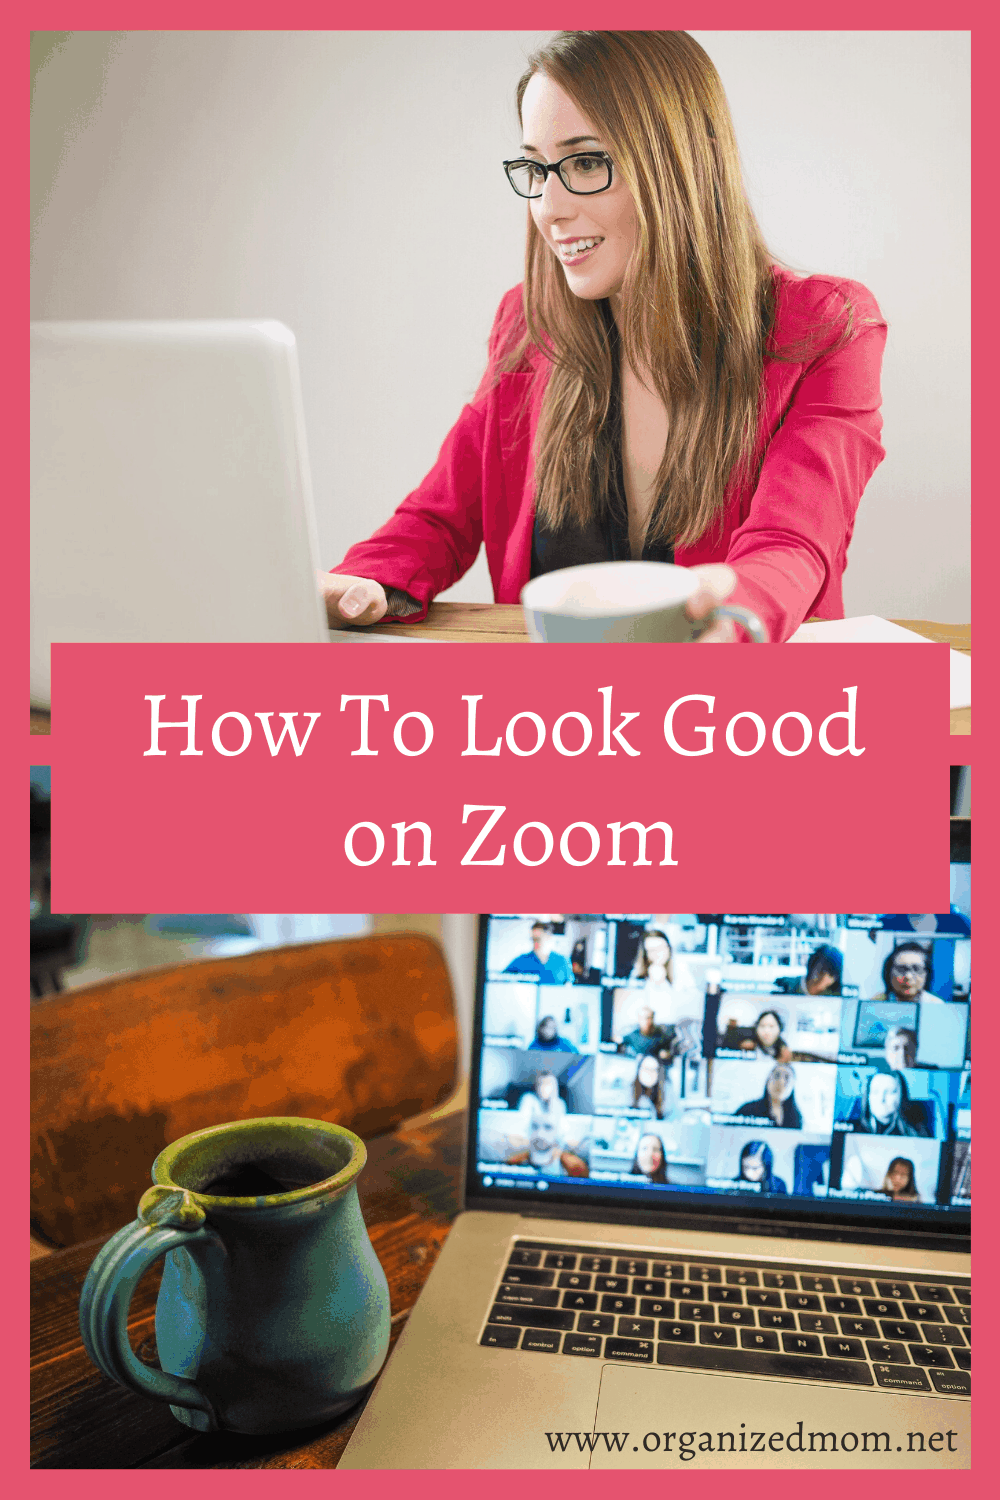 How to look good on Zoom